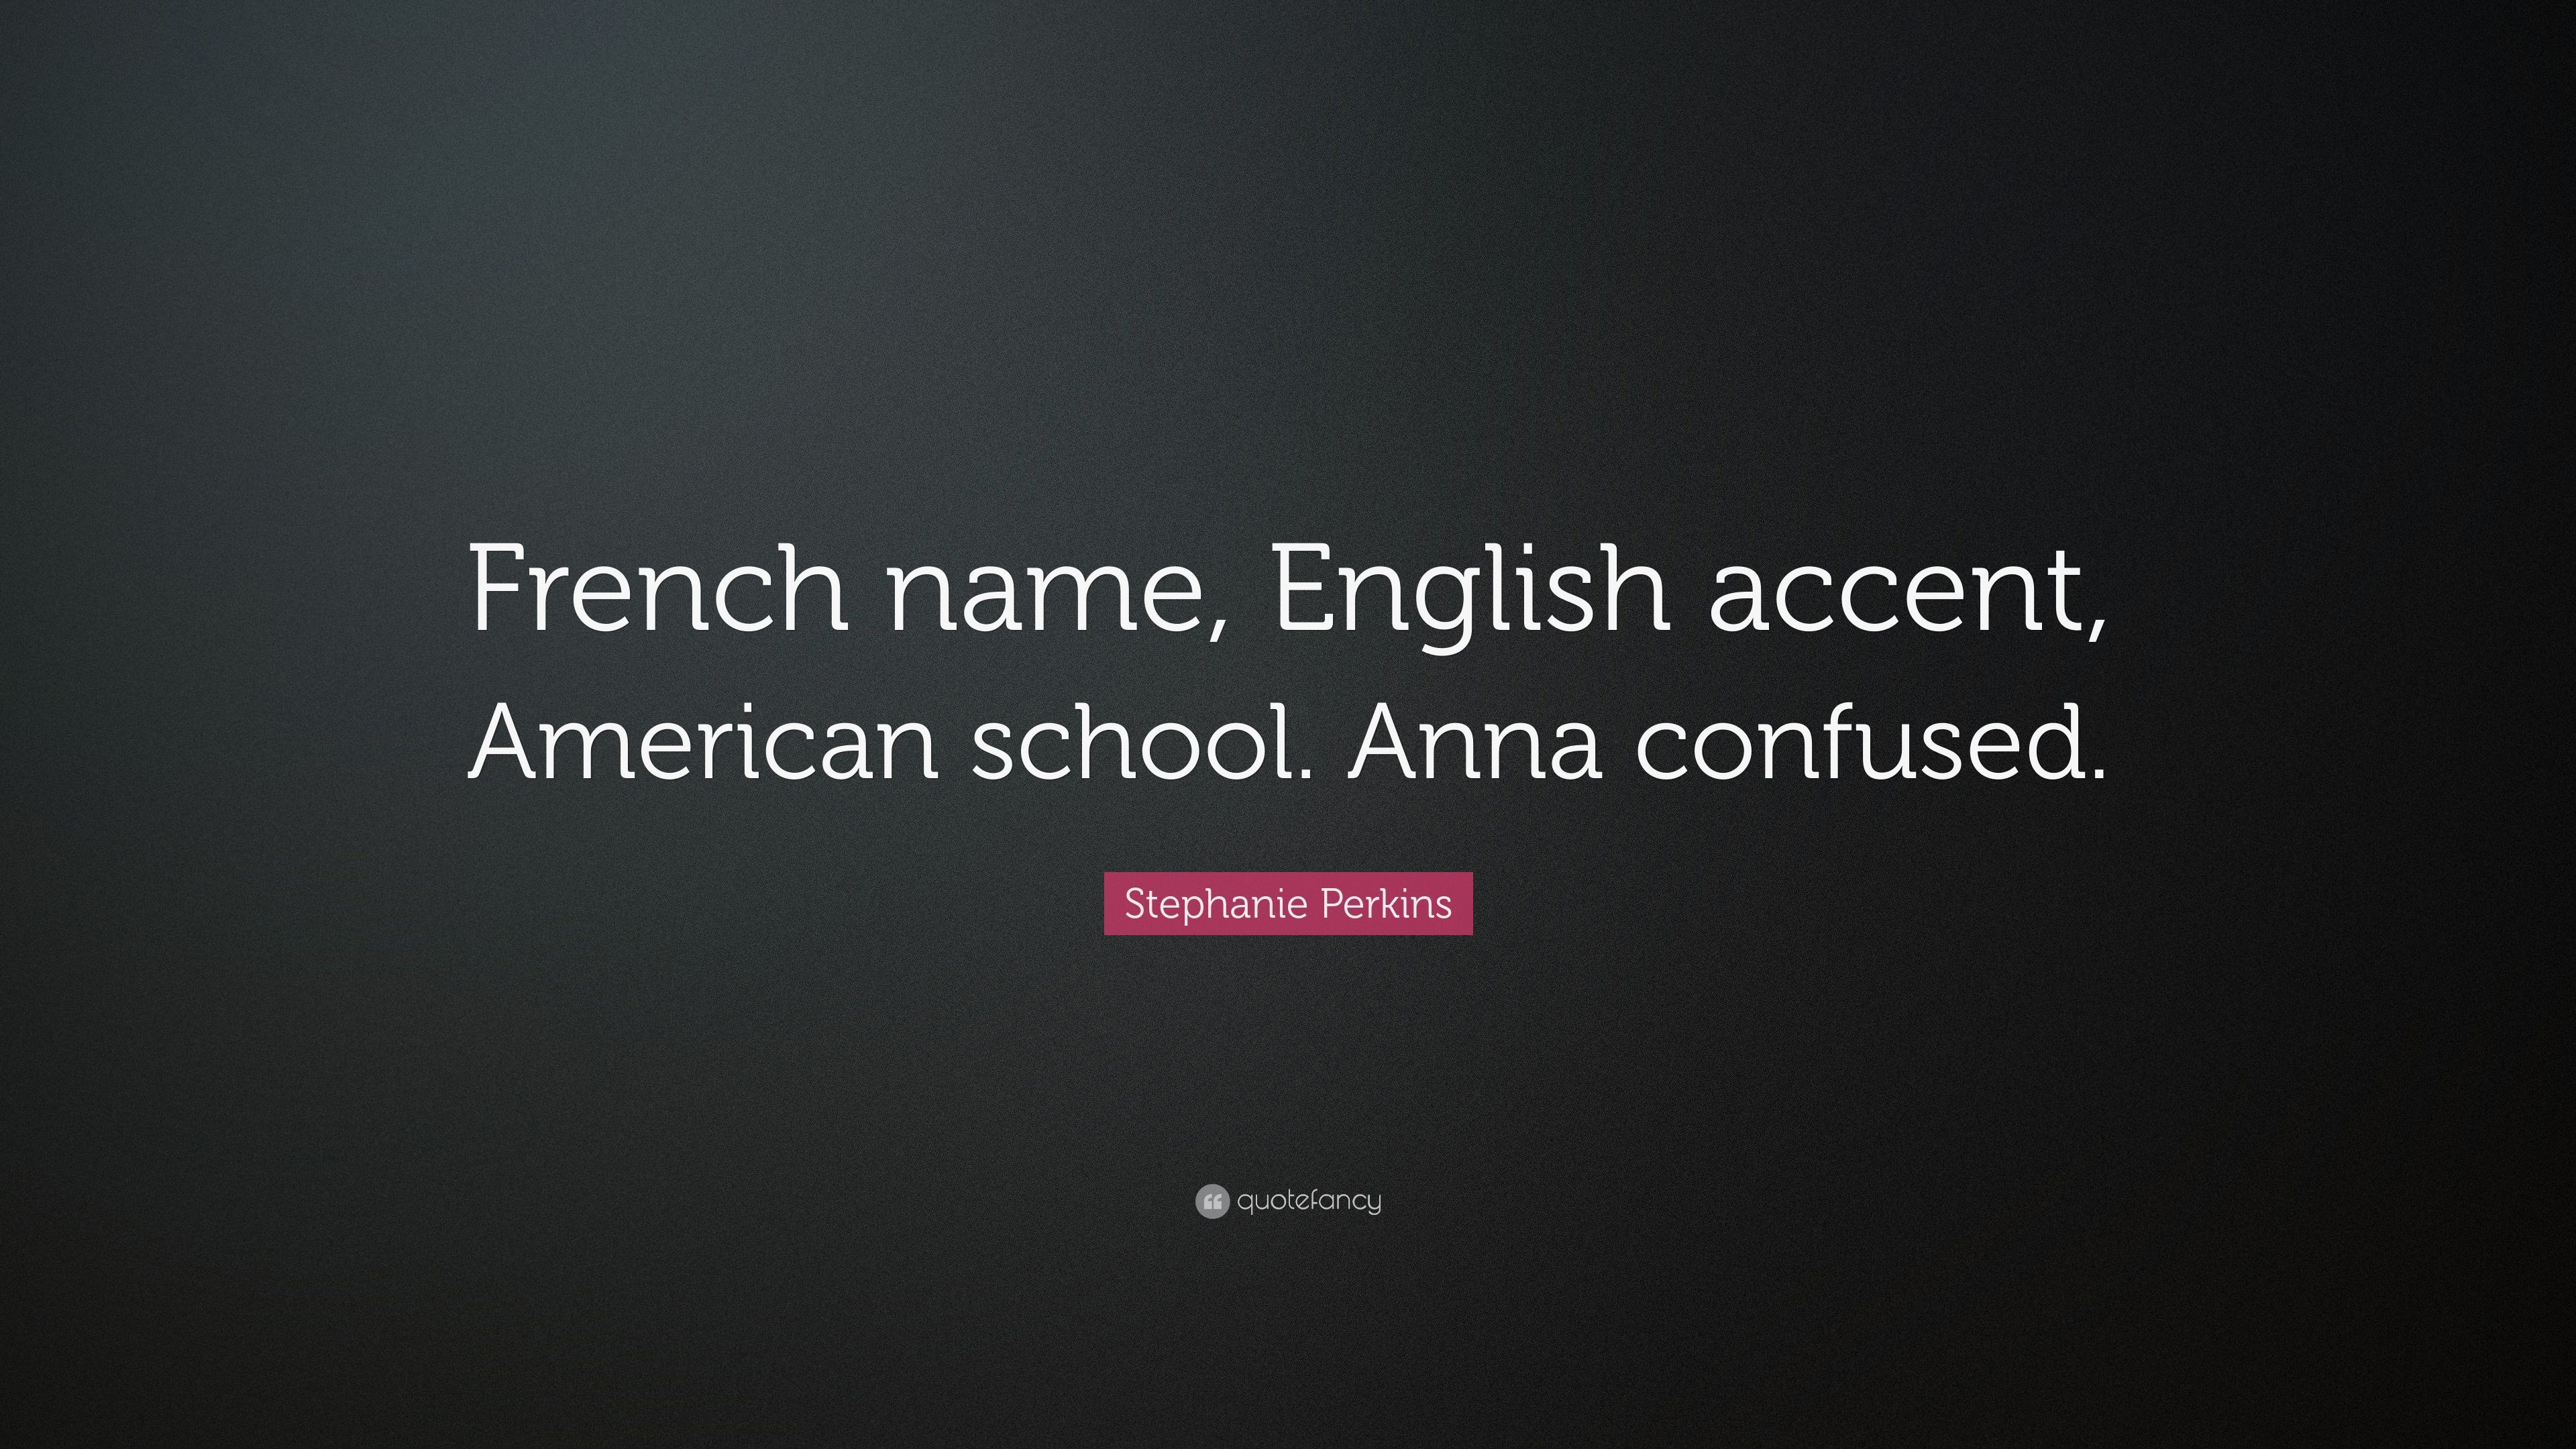 Amazing Wallpaper Name English - 3777627-Stephanie-Perkins-Quote-French-name-English-accent-American-school  You Should Have_698488.jpg